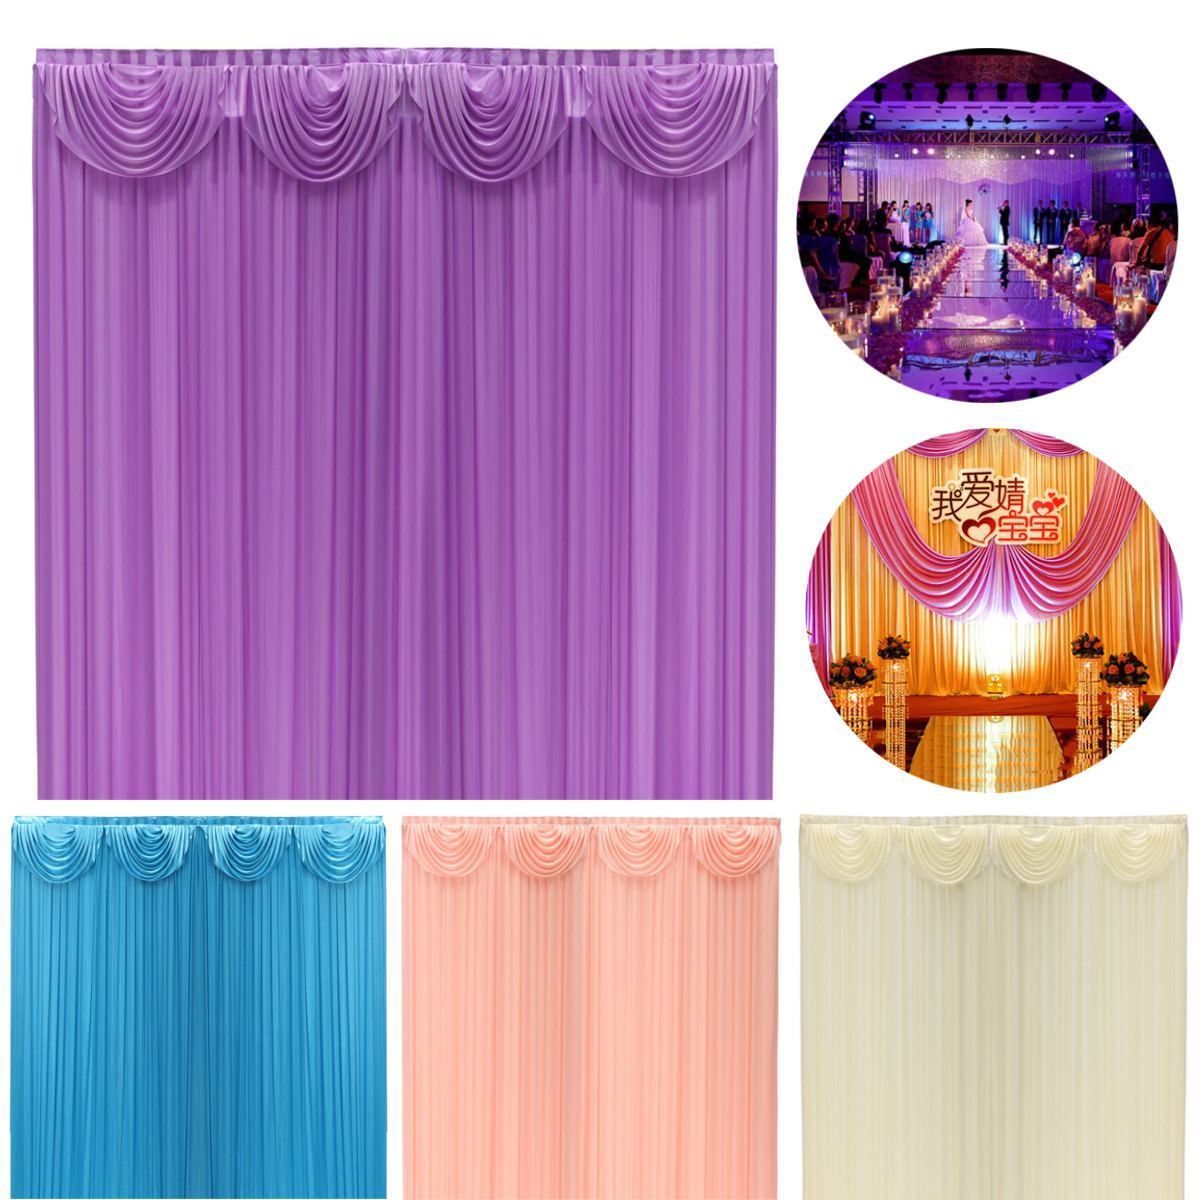 Large 3x3m Wedding Party Backdrop Curtain Drapes Background Studio Photography Party Events Supplies Wedding DecorationLarge 3x3m Wedding Party Backdrop Curtain Drapes Background Studio Photography Party Events Supplies Wedding Decoration